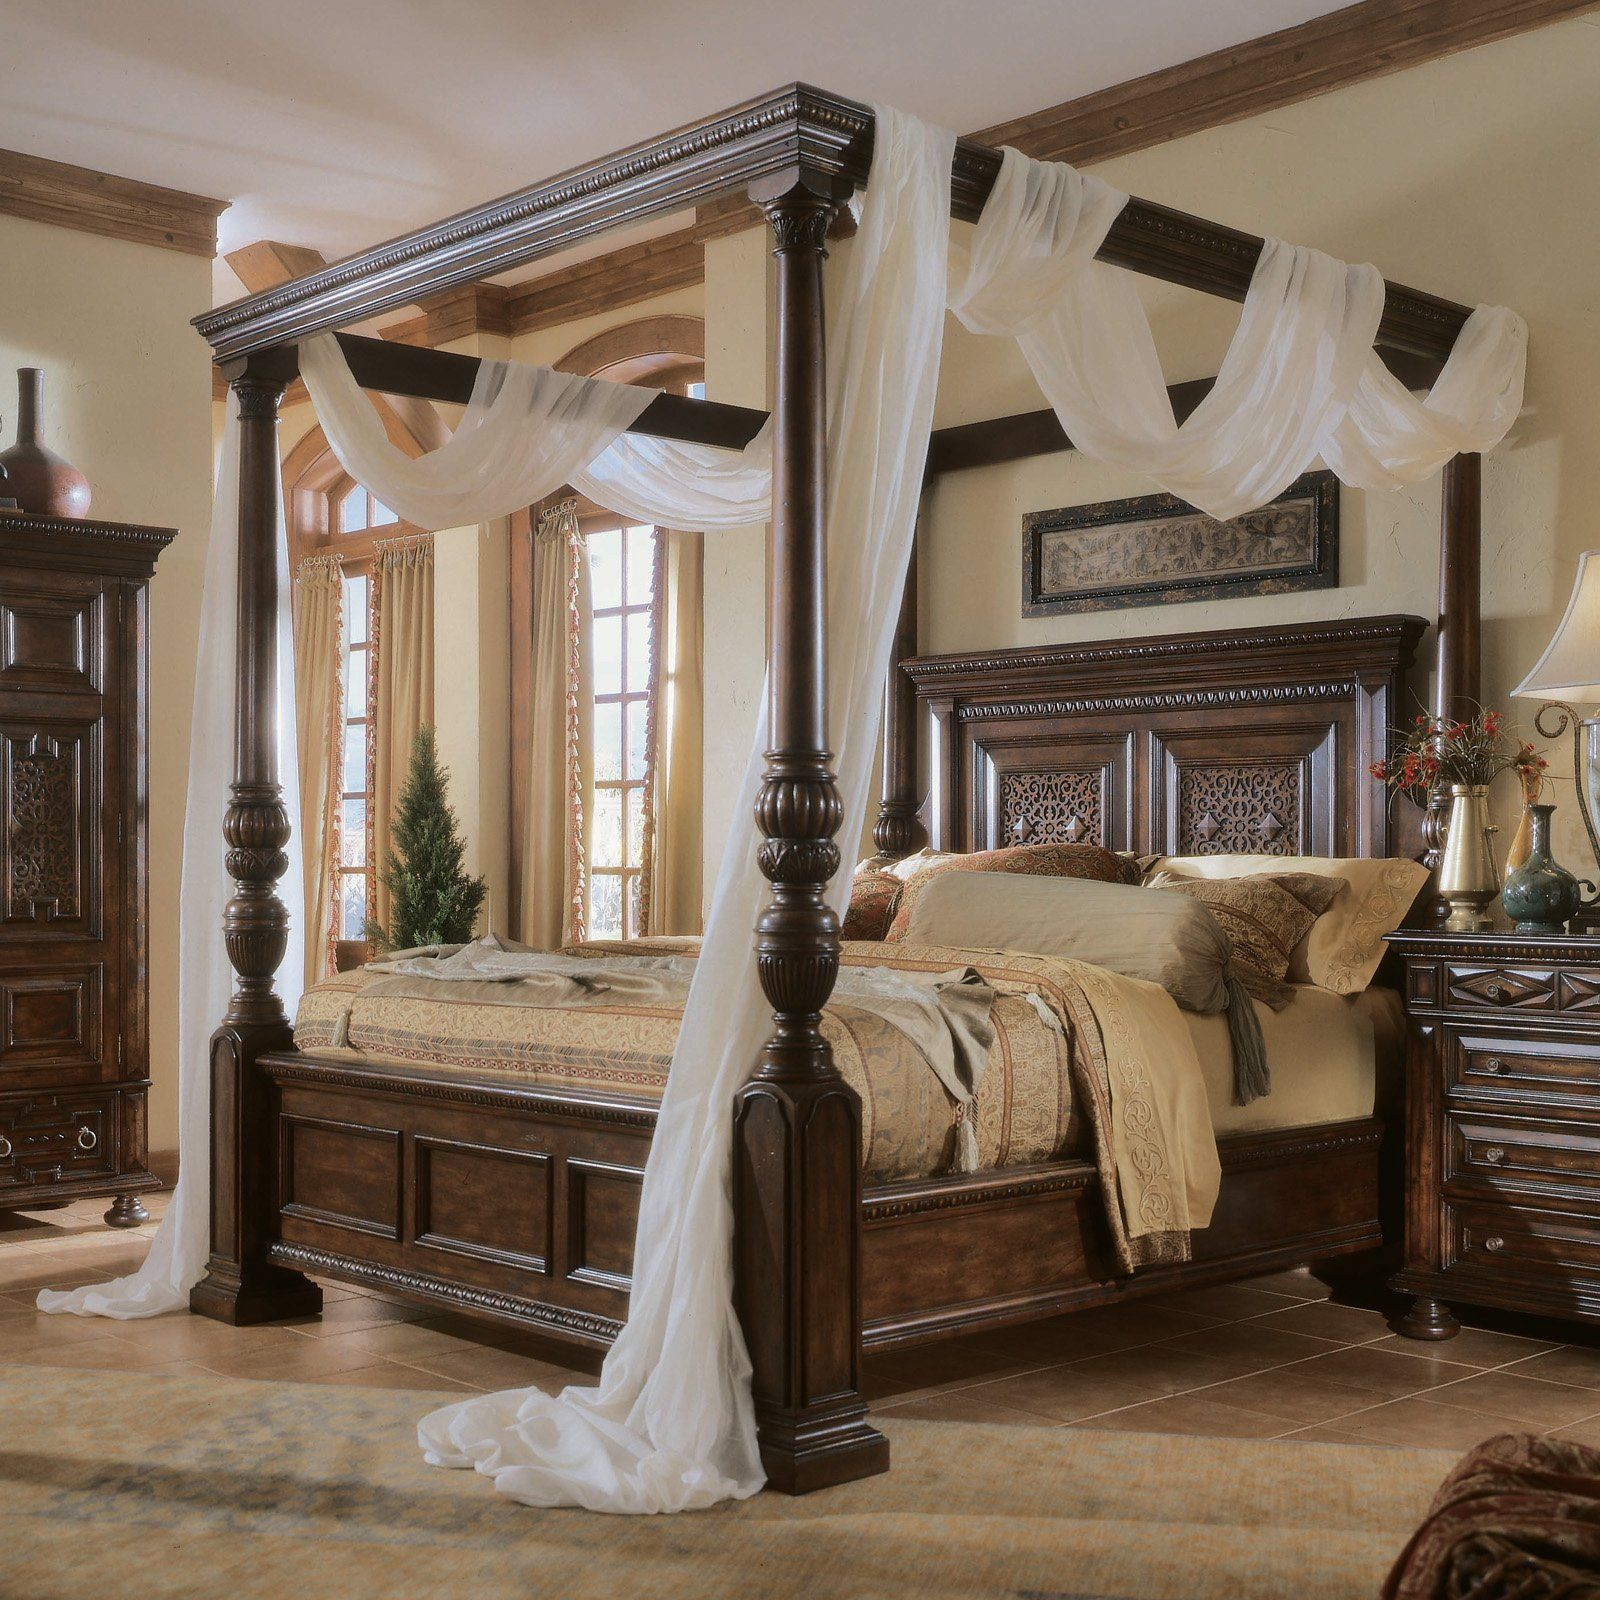 Best 15 Most Beautiful Decorated And Designed Beds Canopy 400 x 300